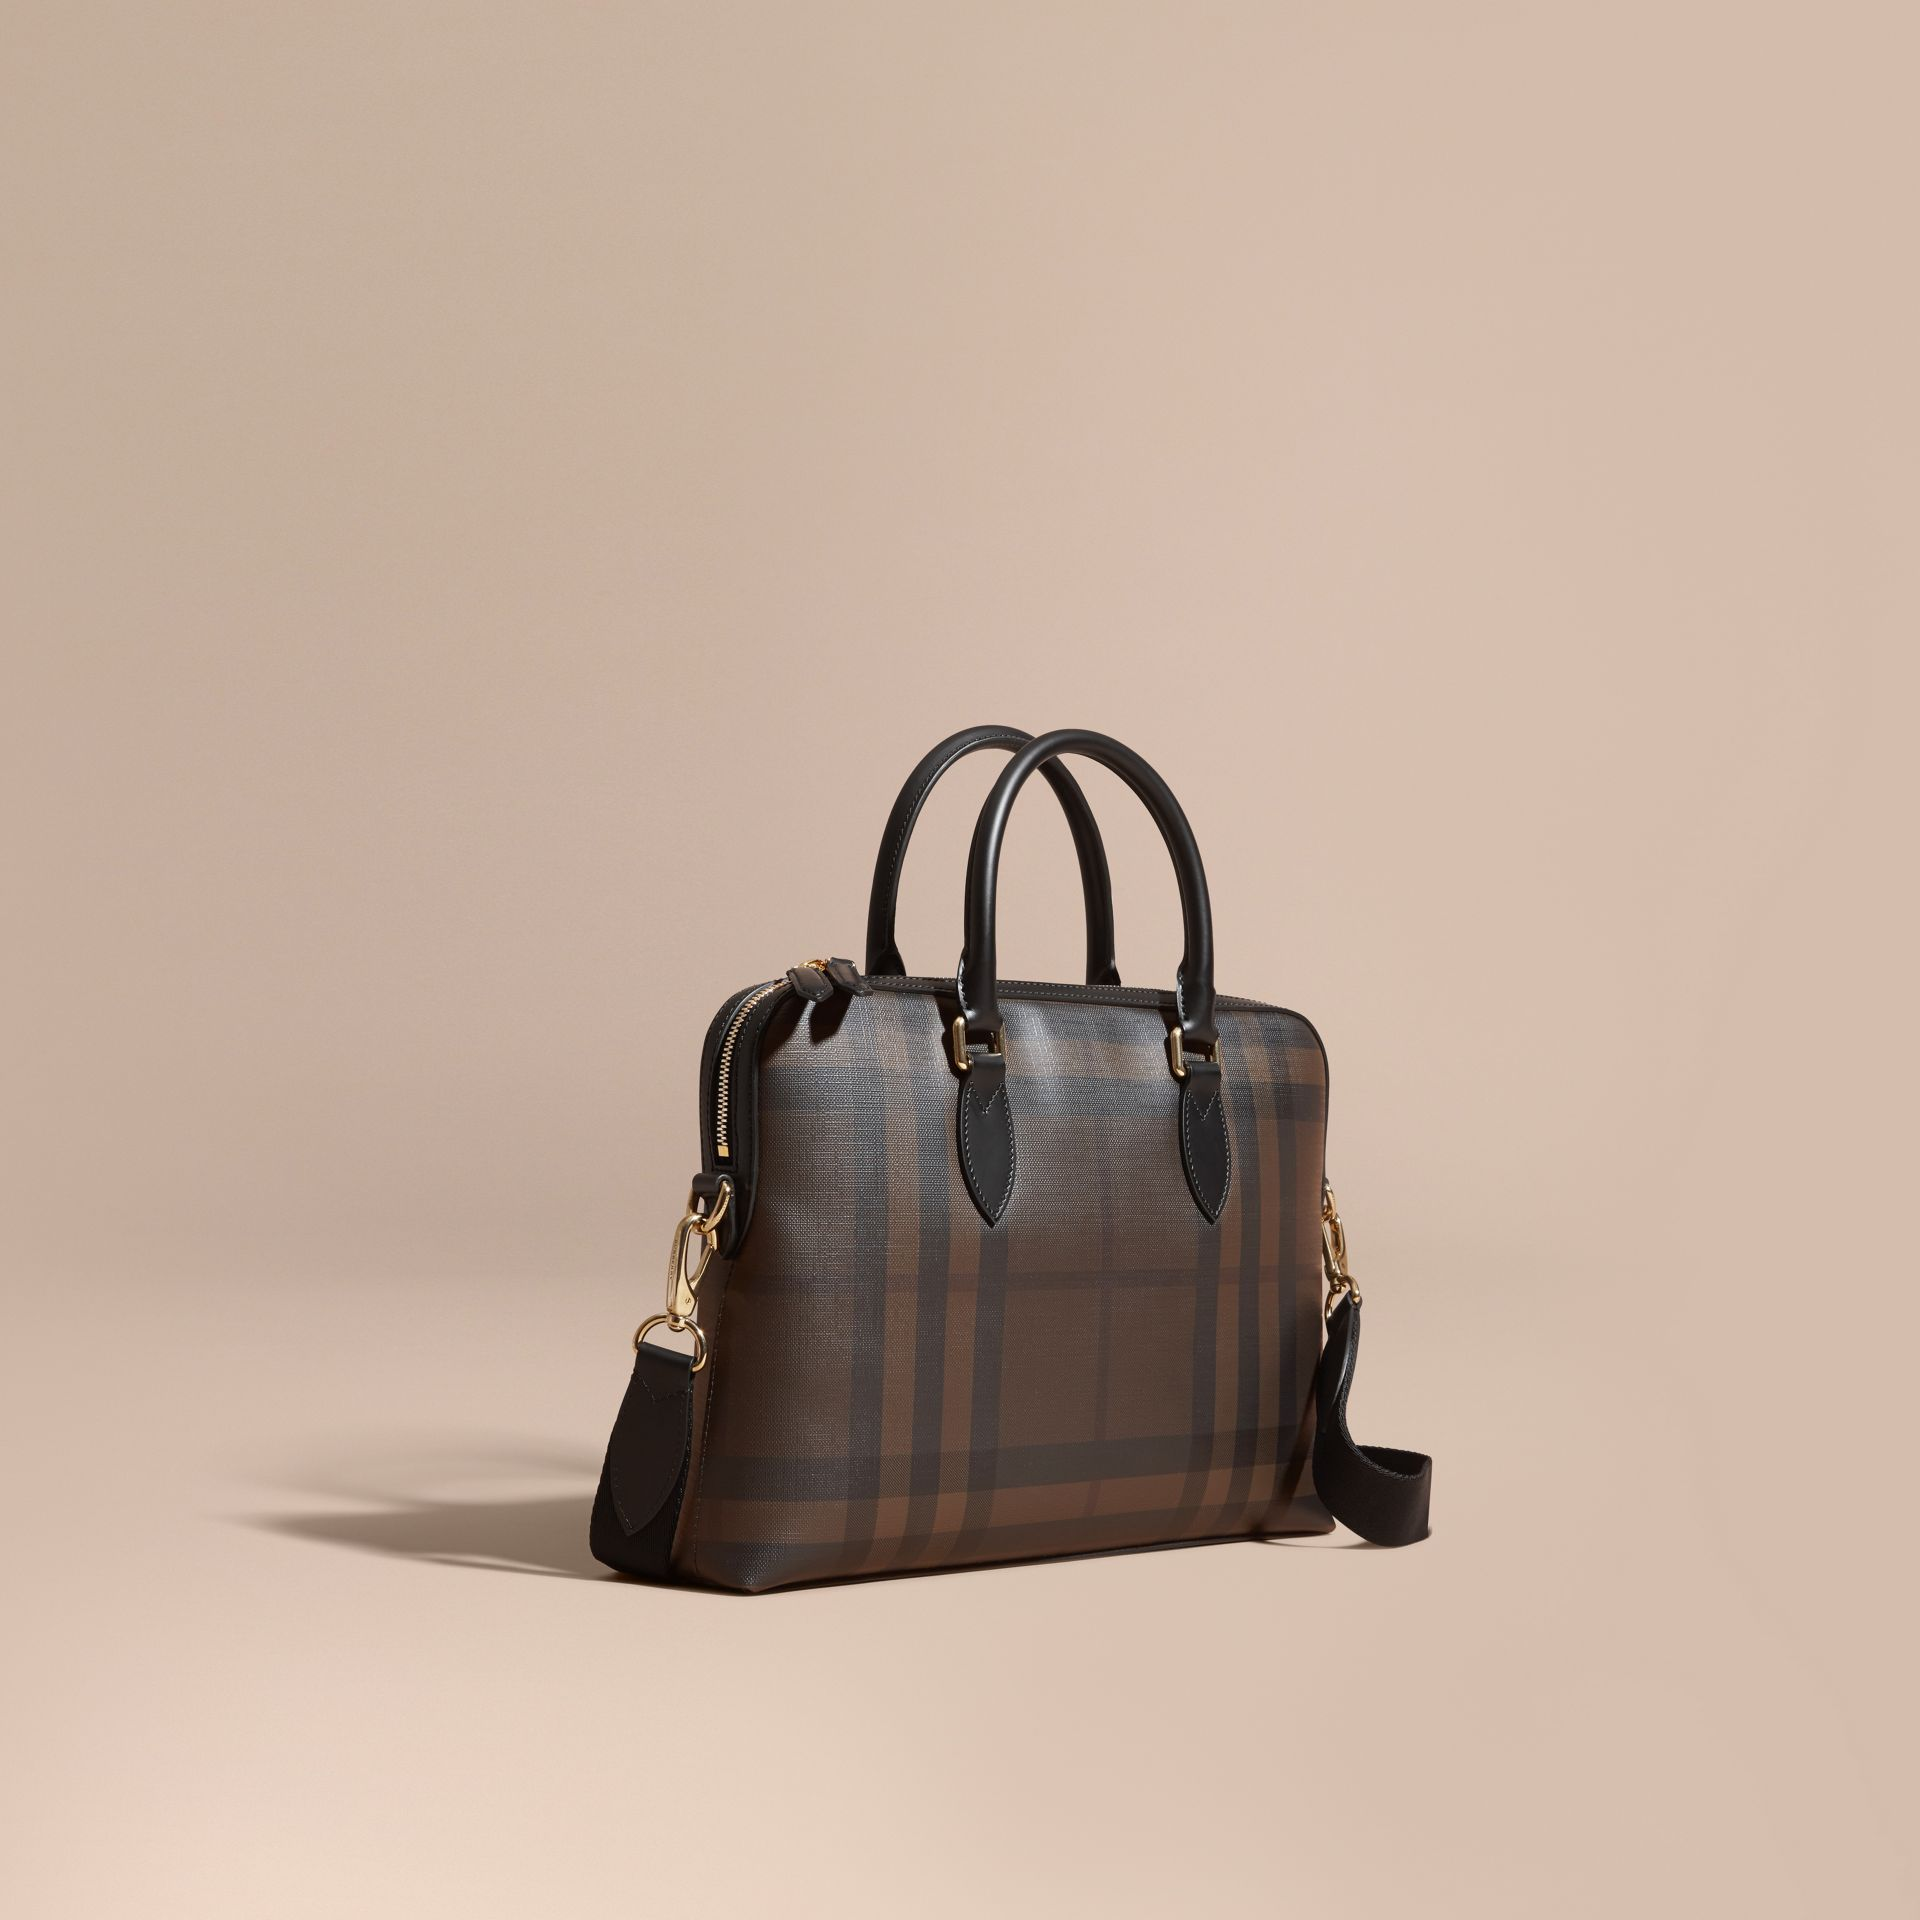 Sac The Barrow fin avec motif London check Chocolat/noir - photo de la galerie 1